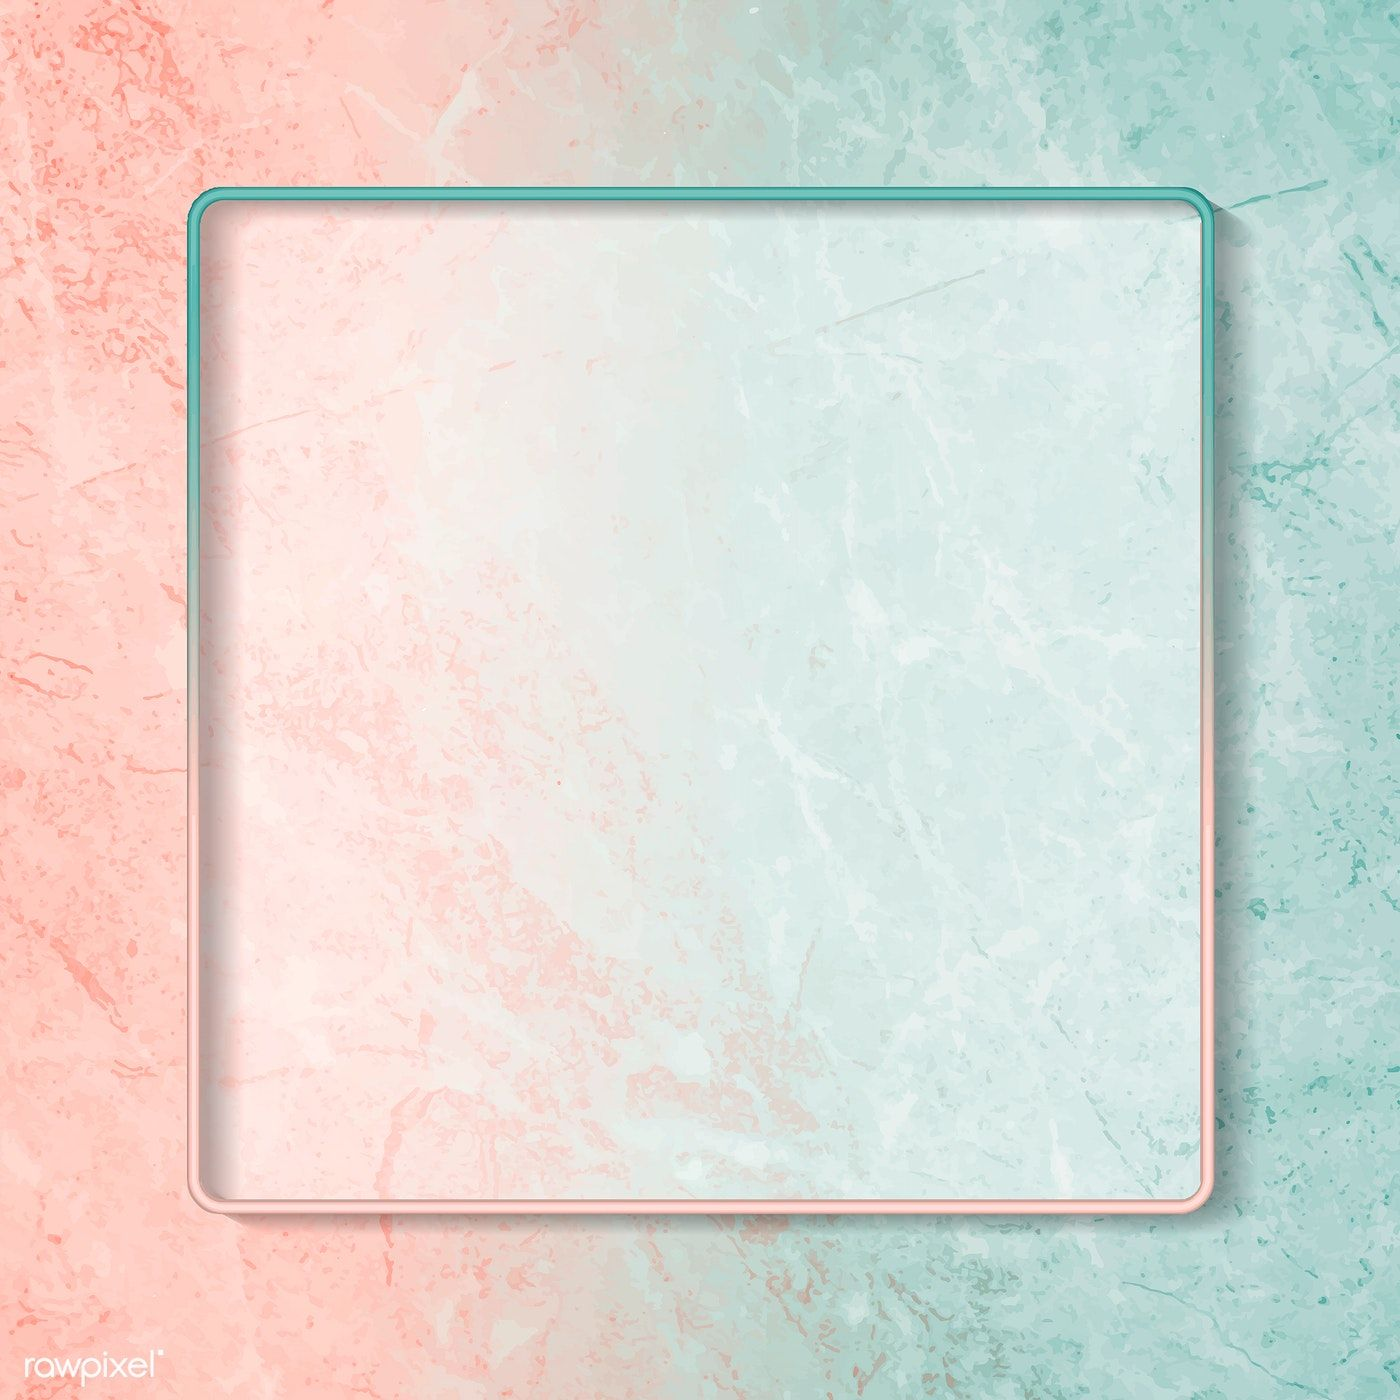 Download premium vector of Square frame on abstract background 1400x1400